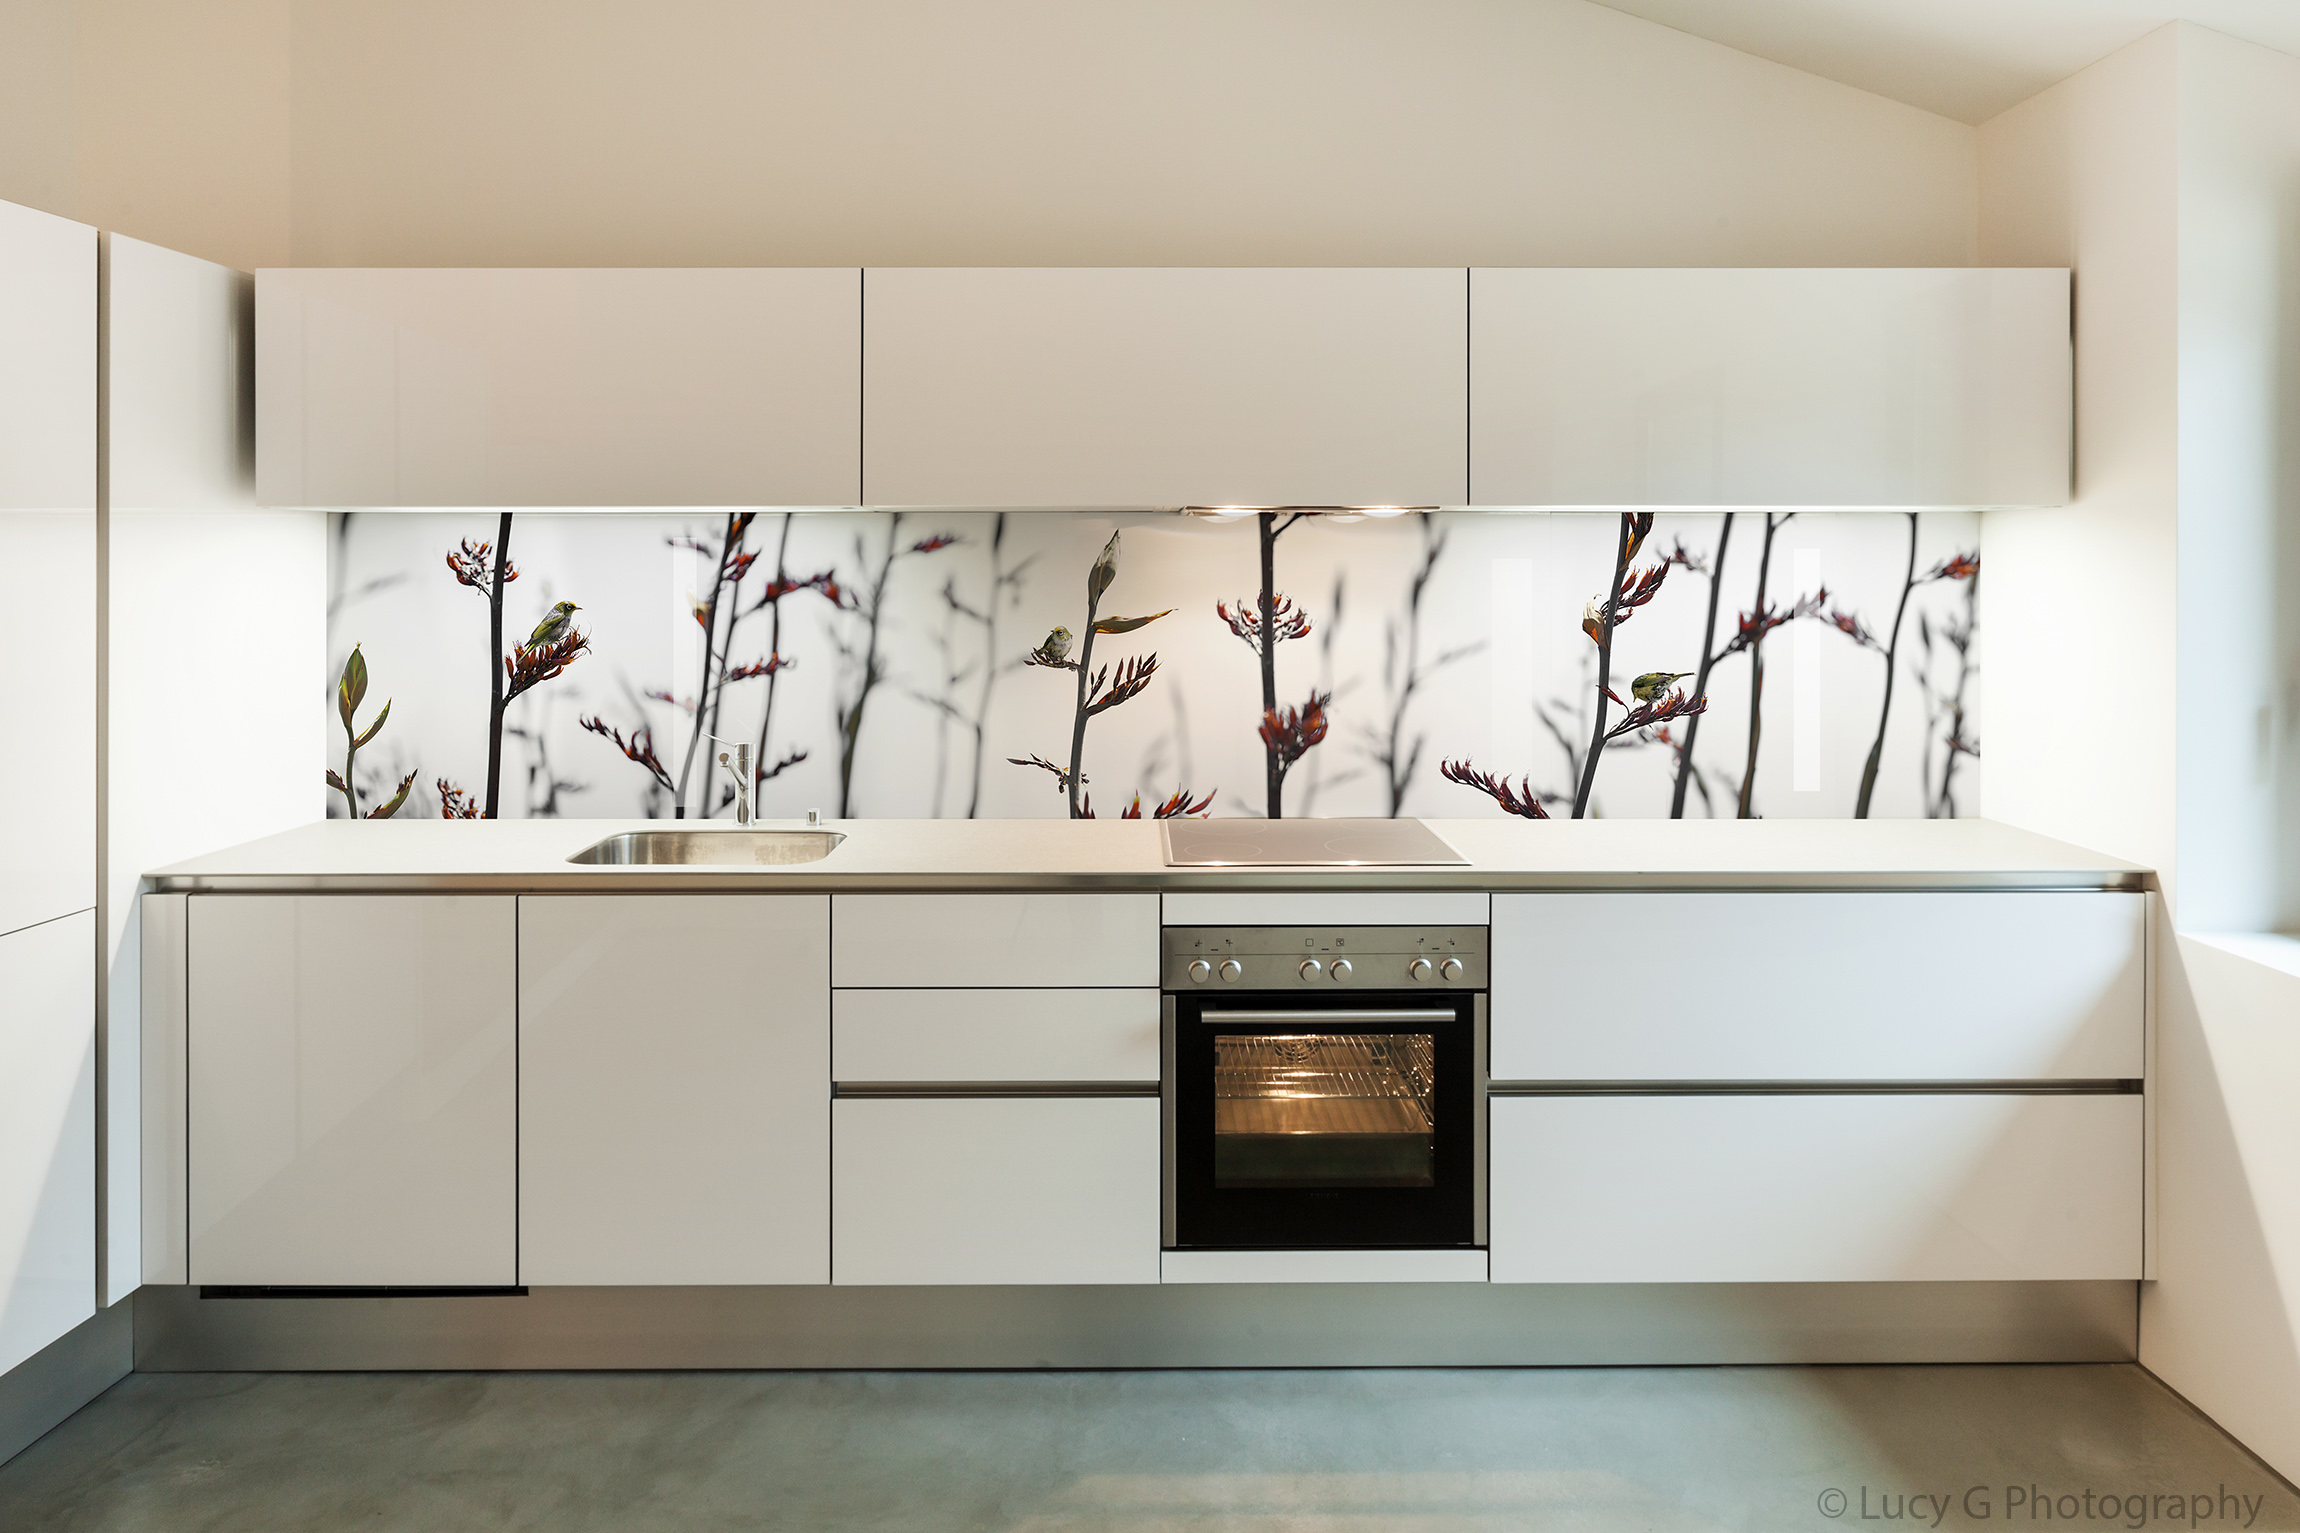 Printed image on glass kitchen splashback  - Perth,  Australia - 'Silvereye on Flax'